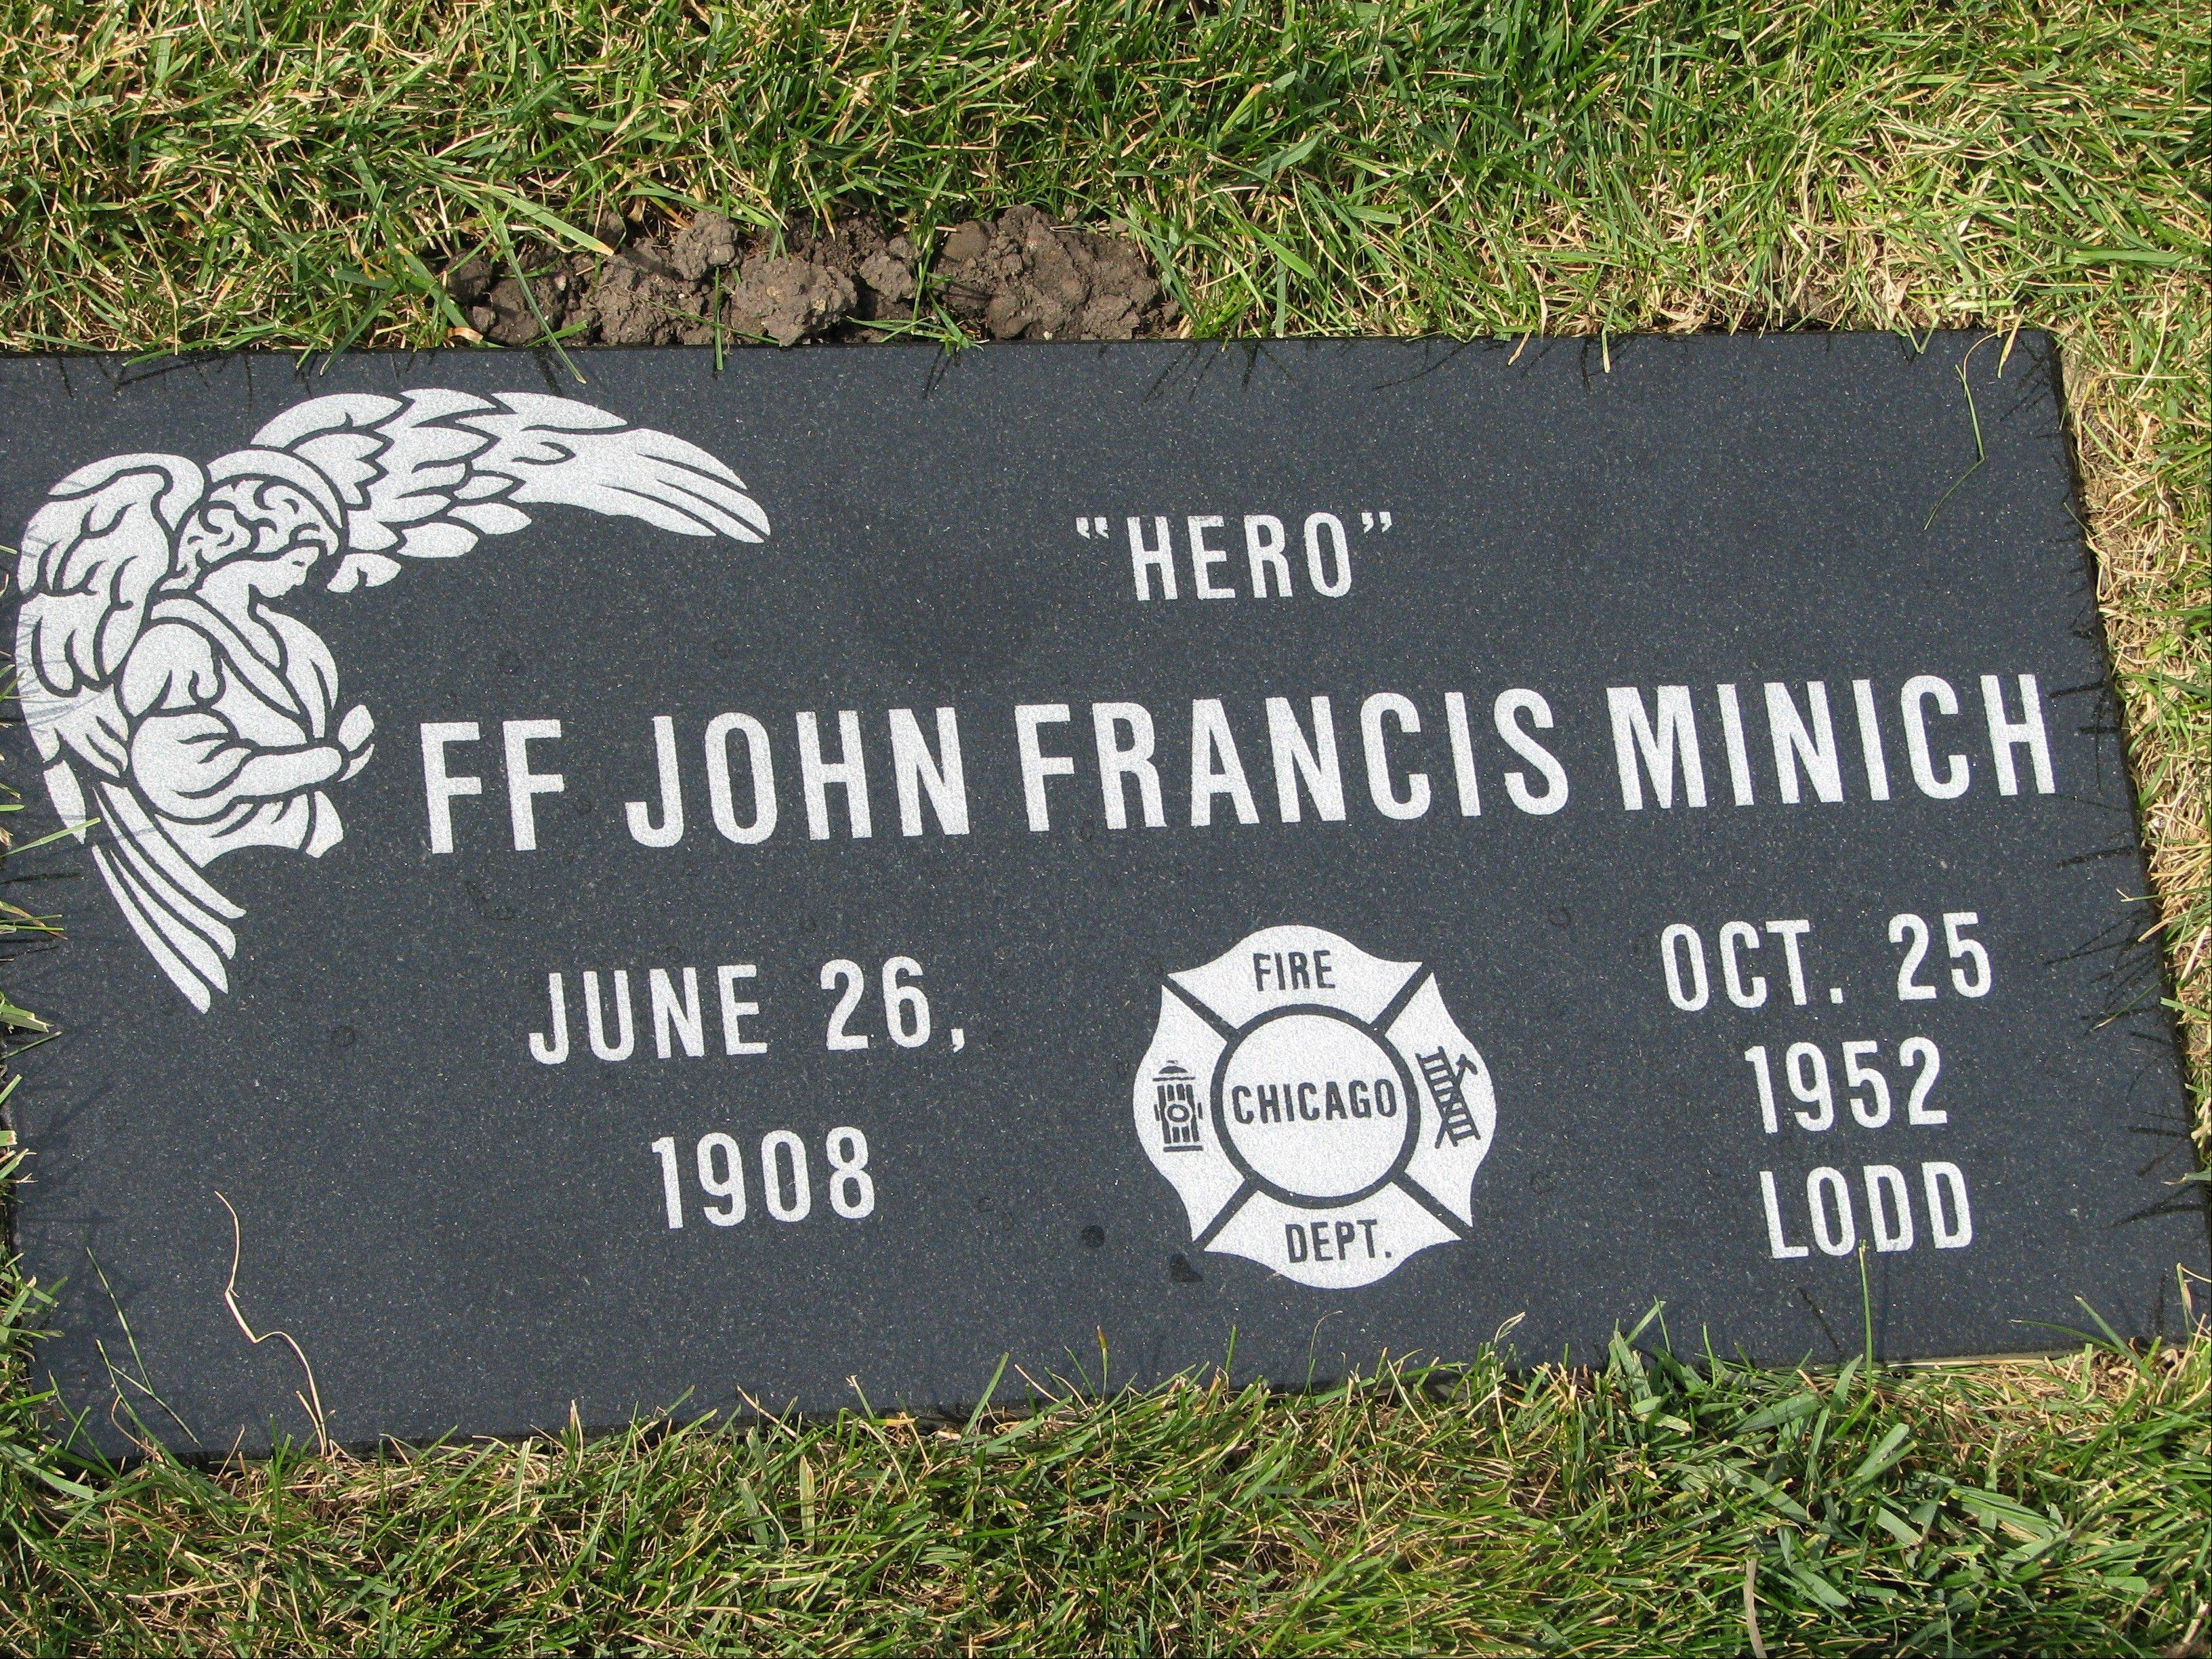 This is the freshly placed memorial stone donated by Mount Emblem Cemetery of Elmhurst in honor of John Minich.